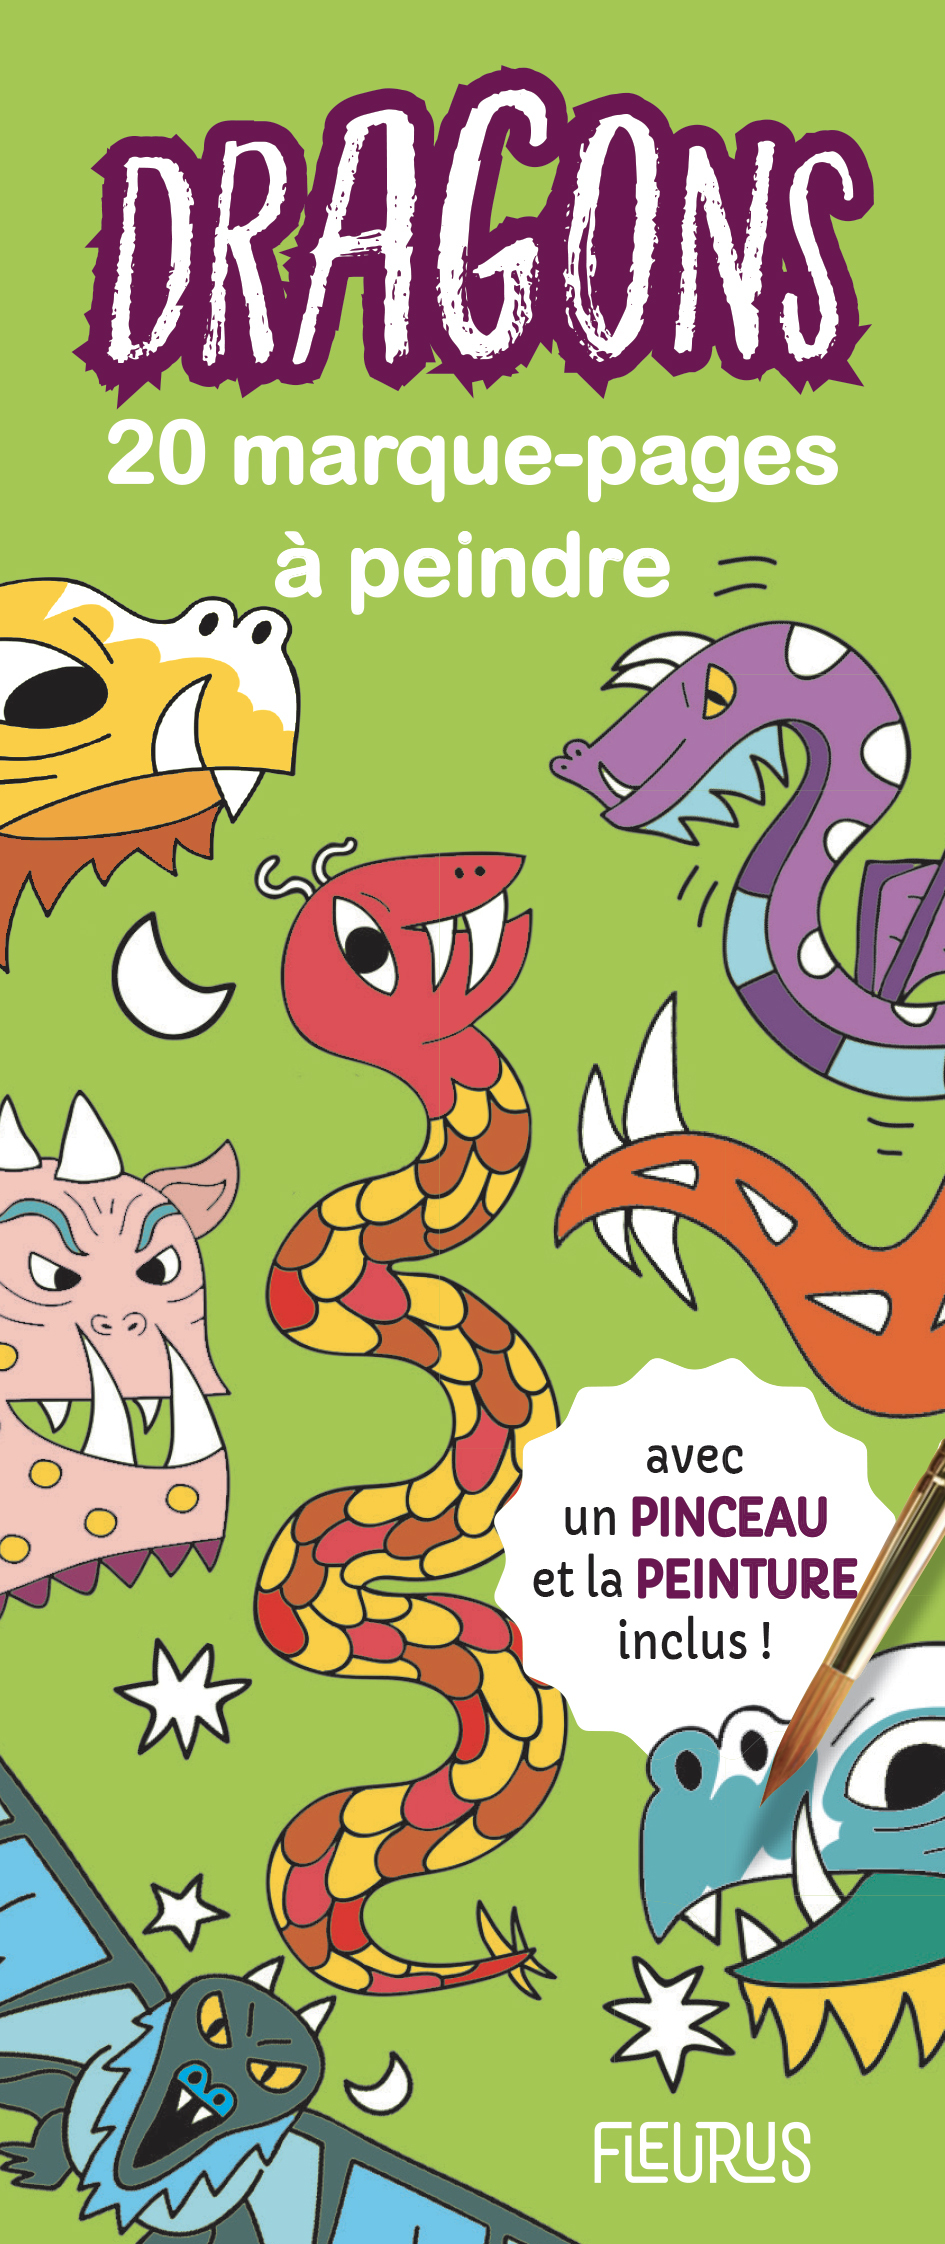 MARQUE-PAGES A PEINDRE - DRAGONS